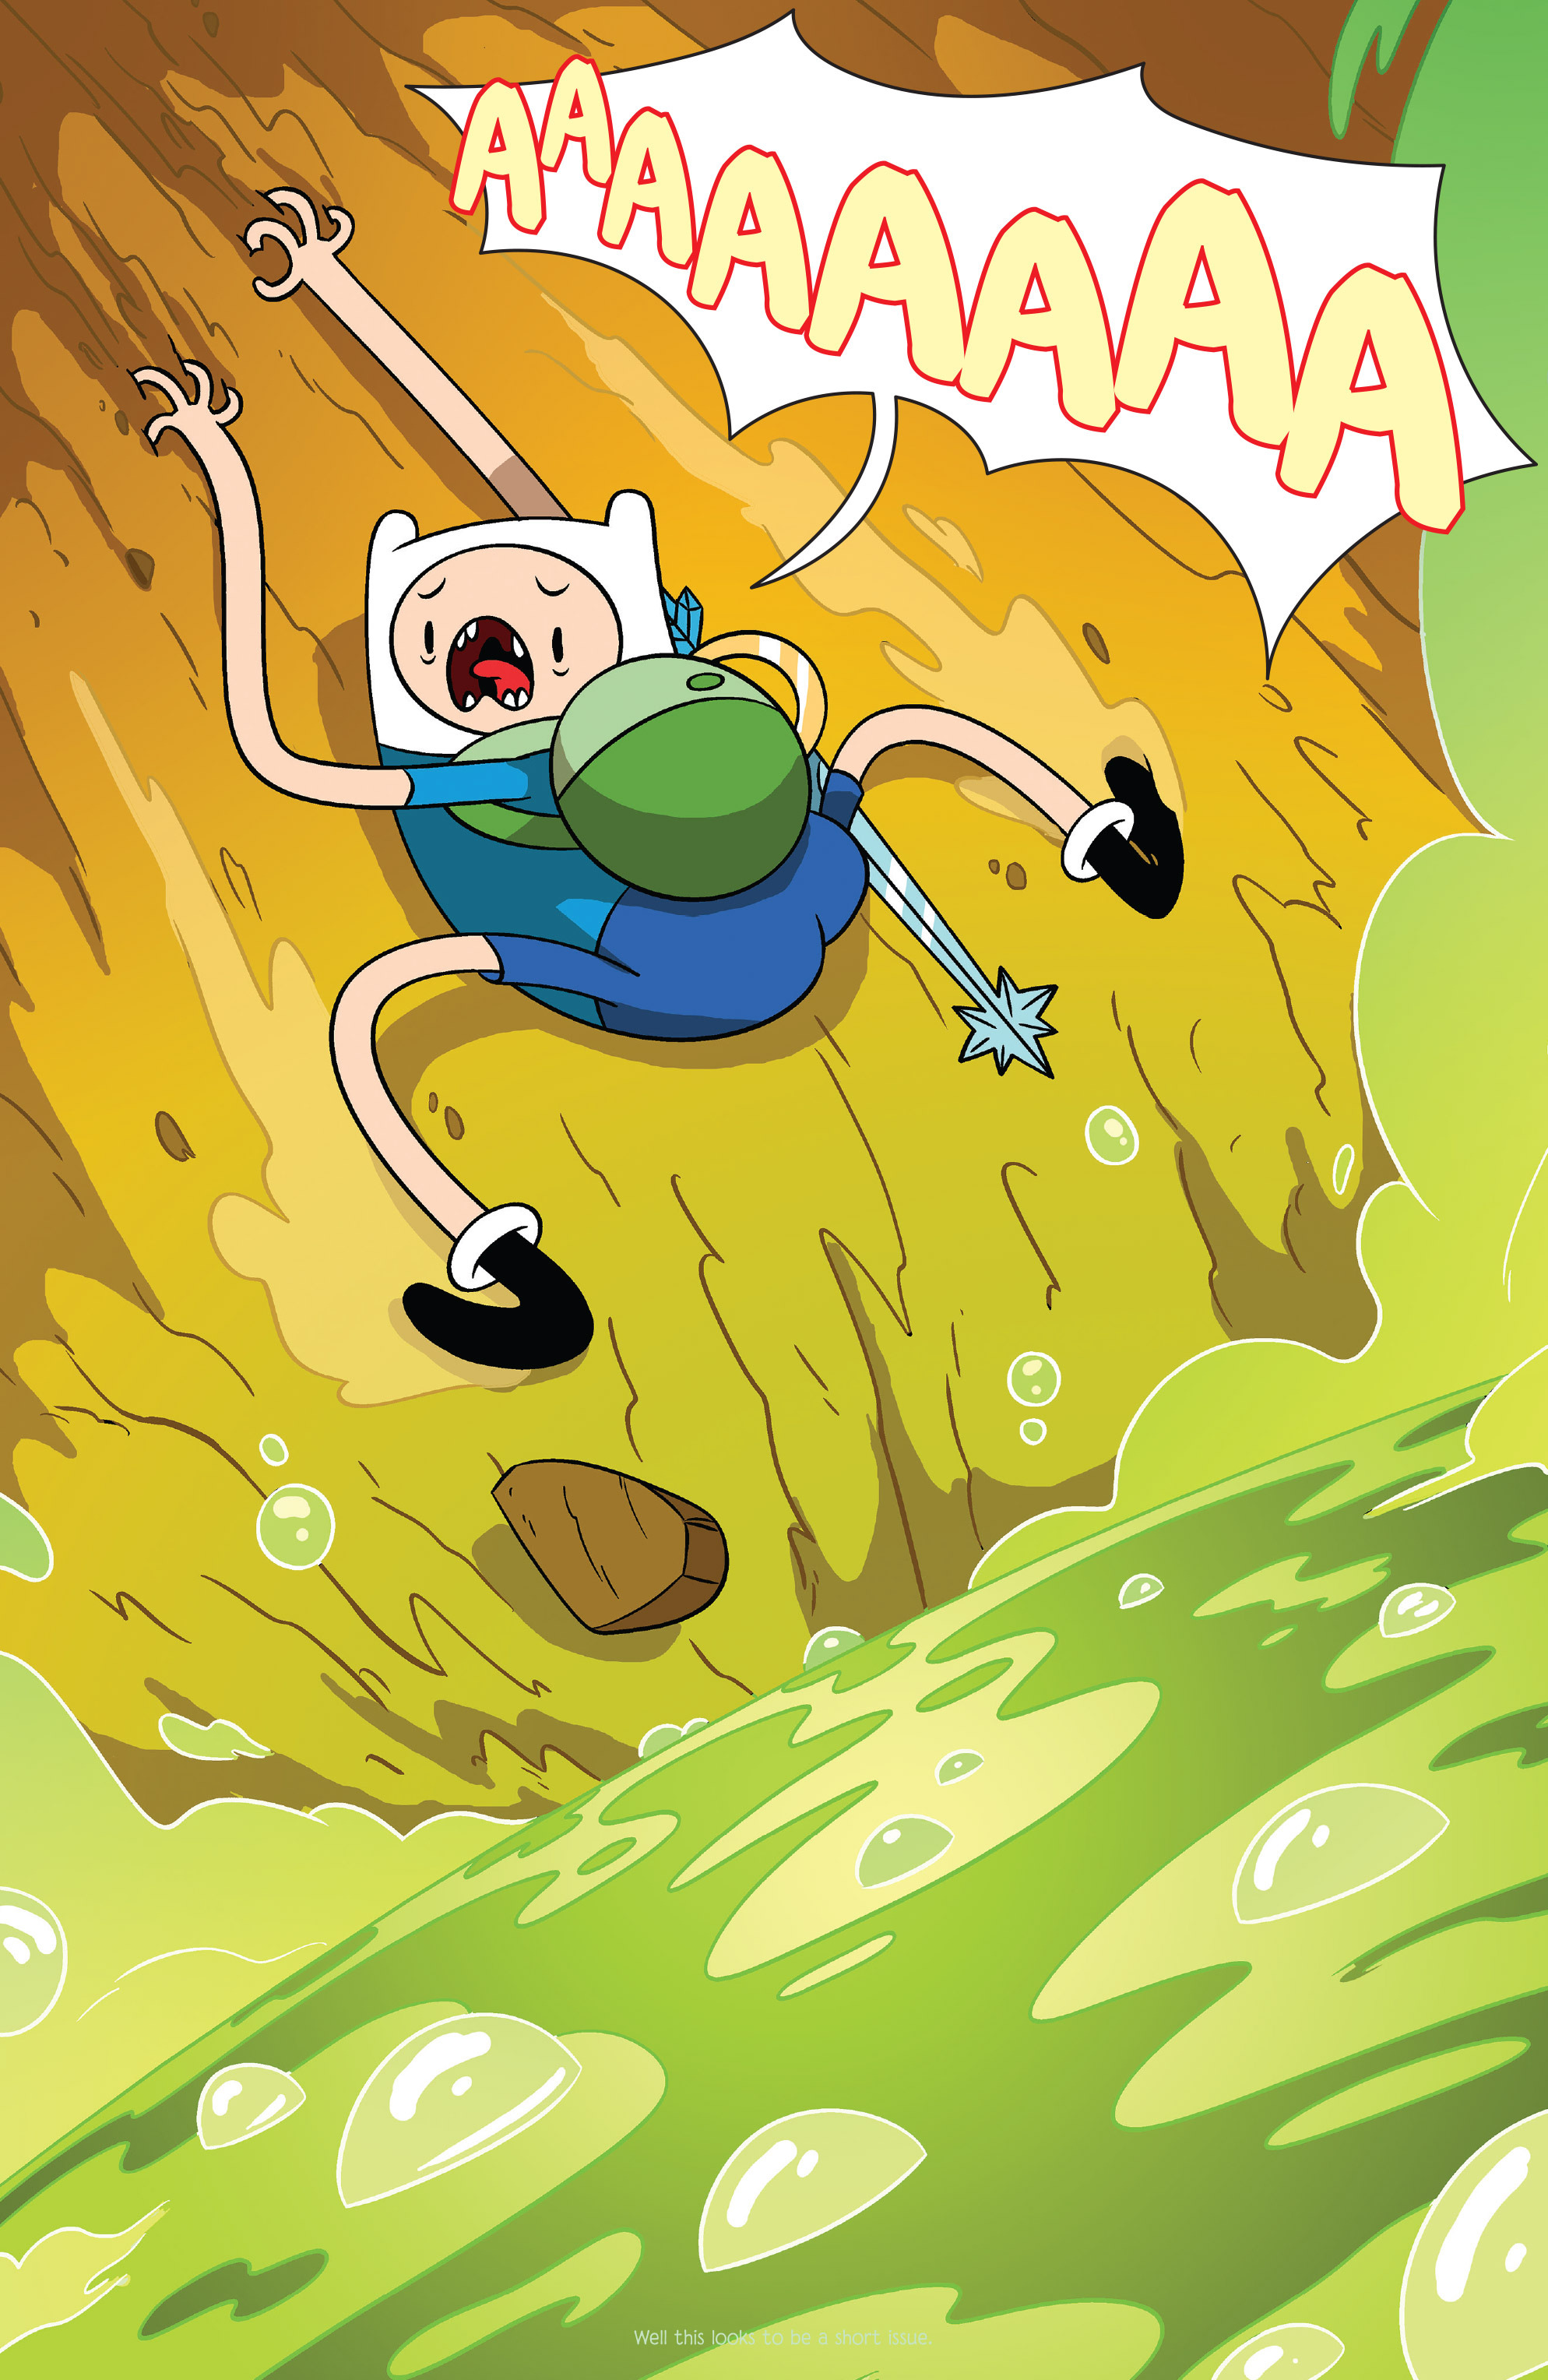 Read online Adventure Time comic -  Issue #38 - 3